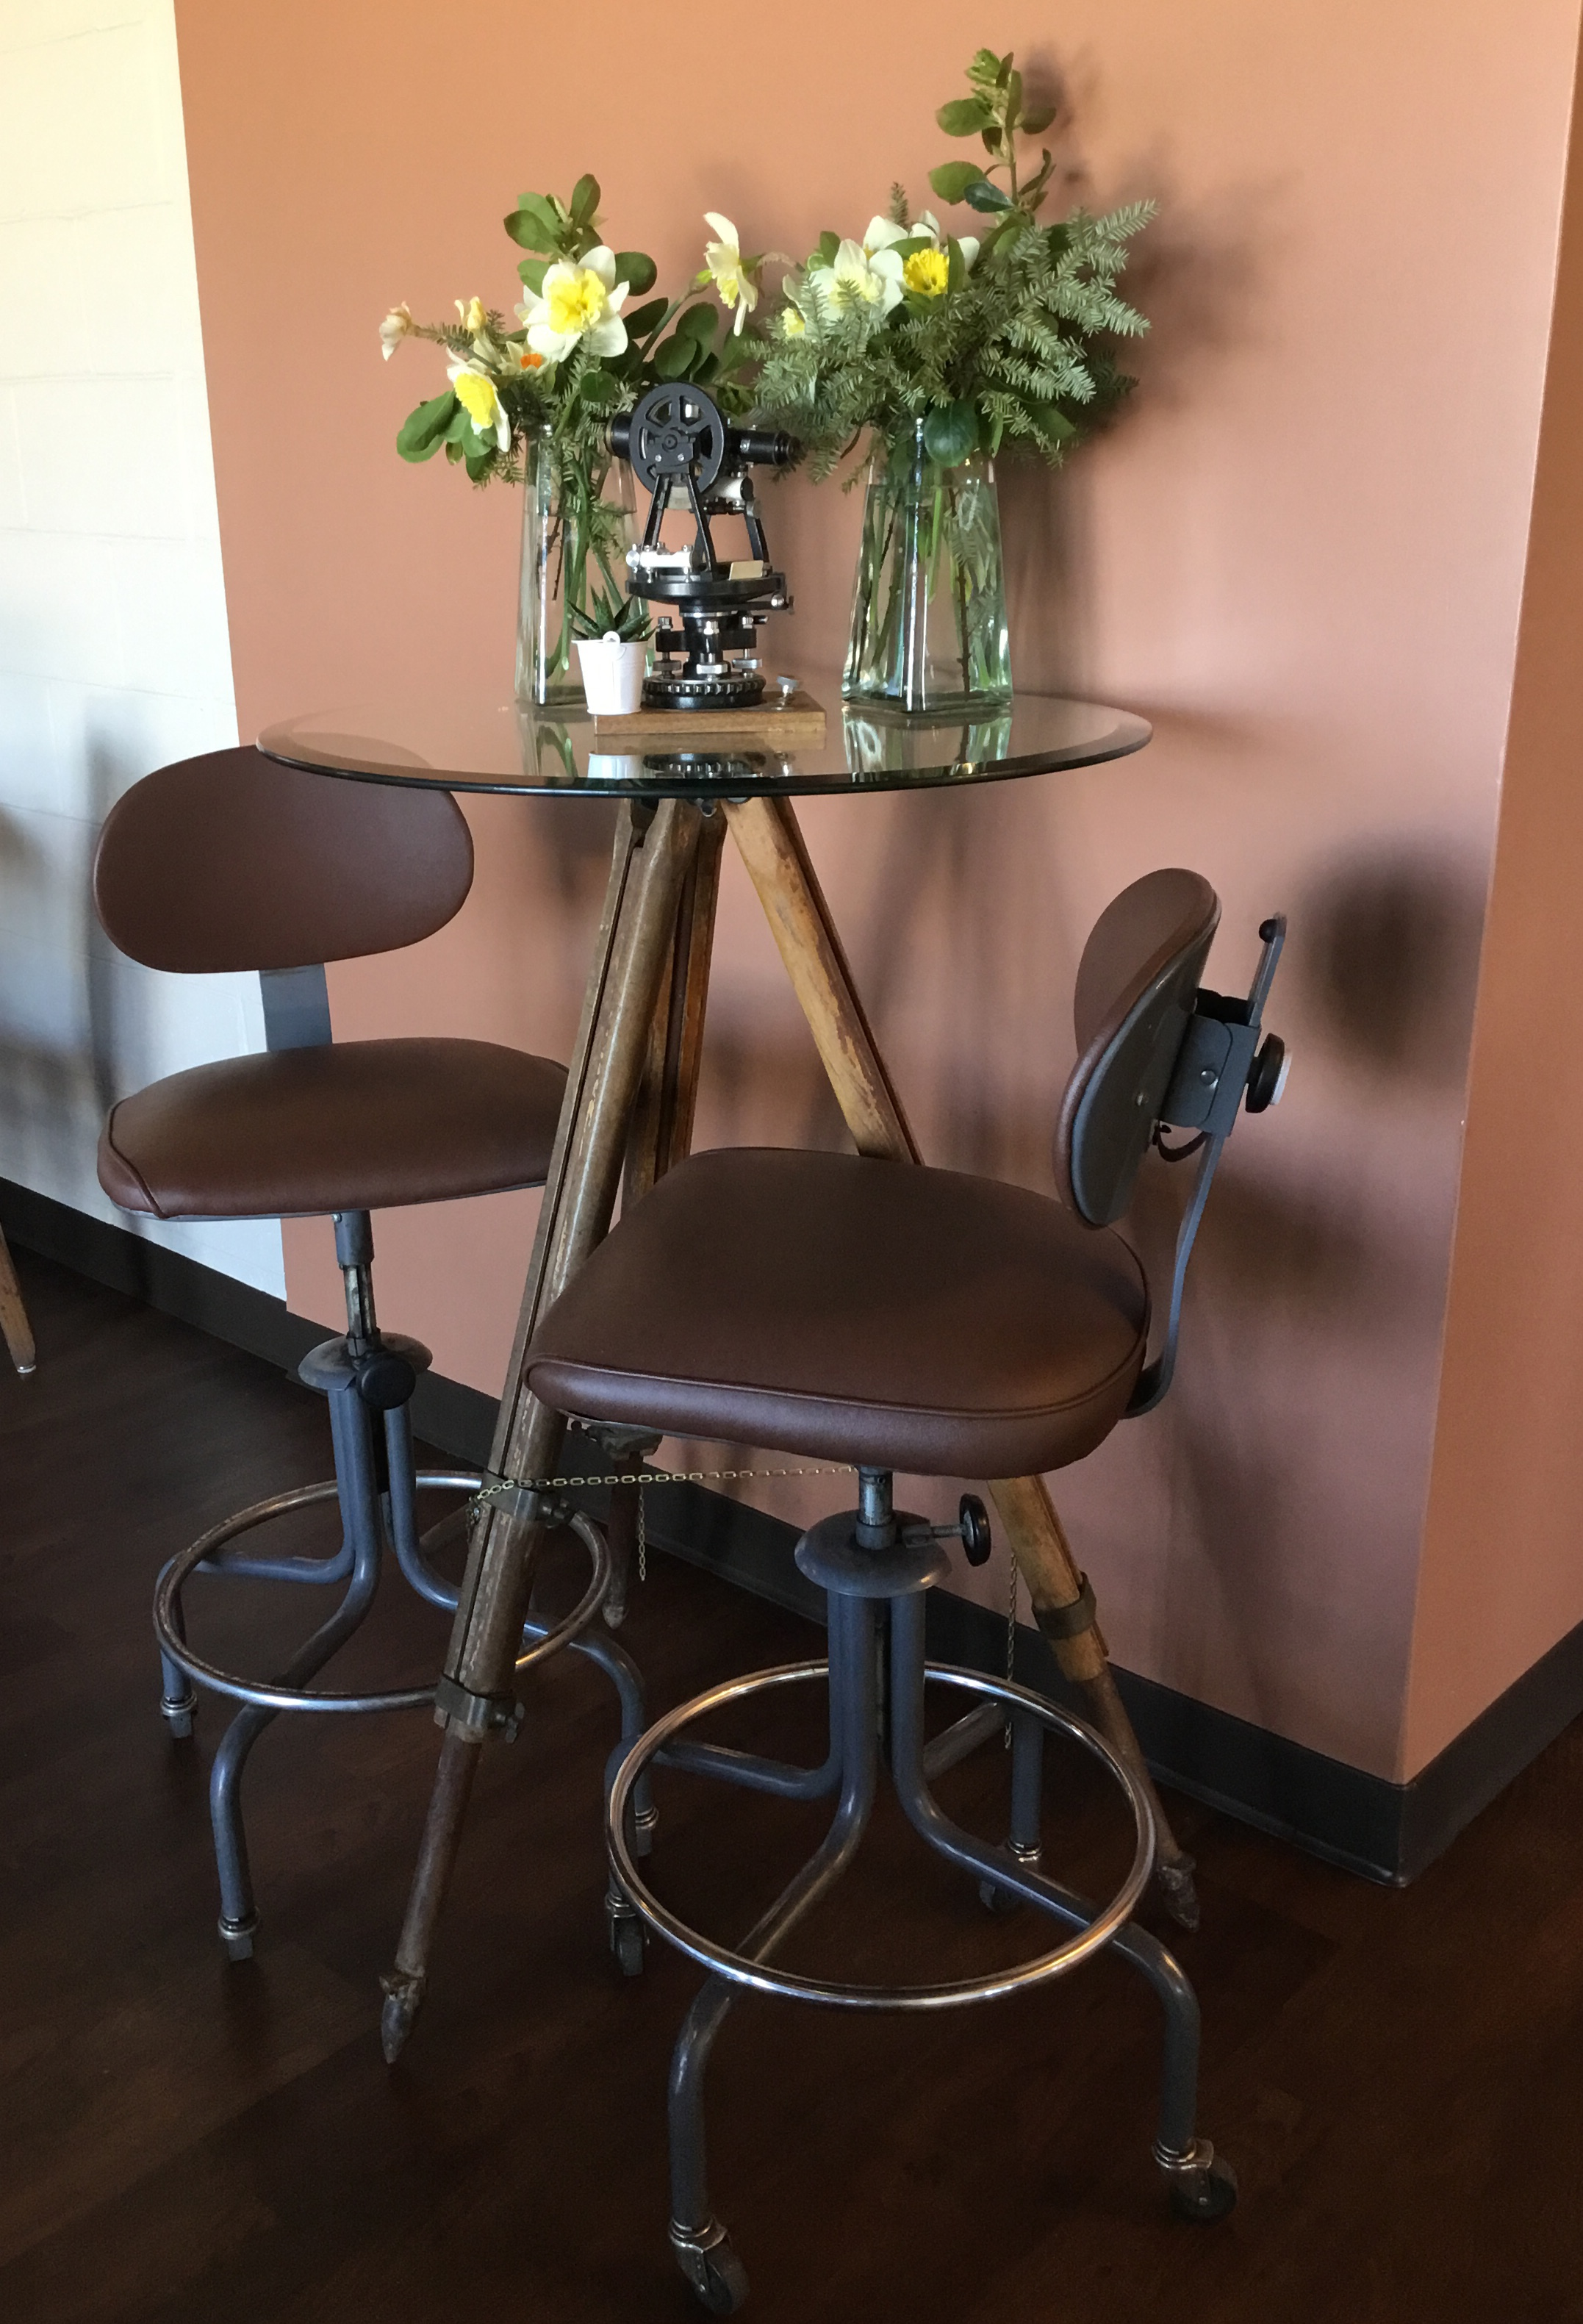 This former survey mid-1900's transit was paired with an early 1900's wooden tripod and a new glass table top to create a cocktail table. The mid-century drafting stools were recovered. -